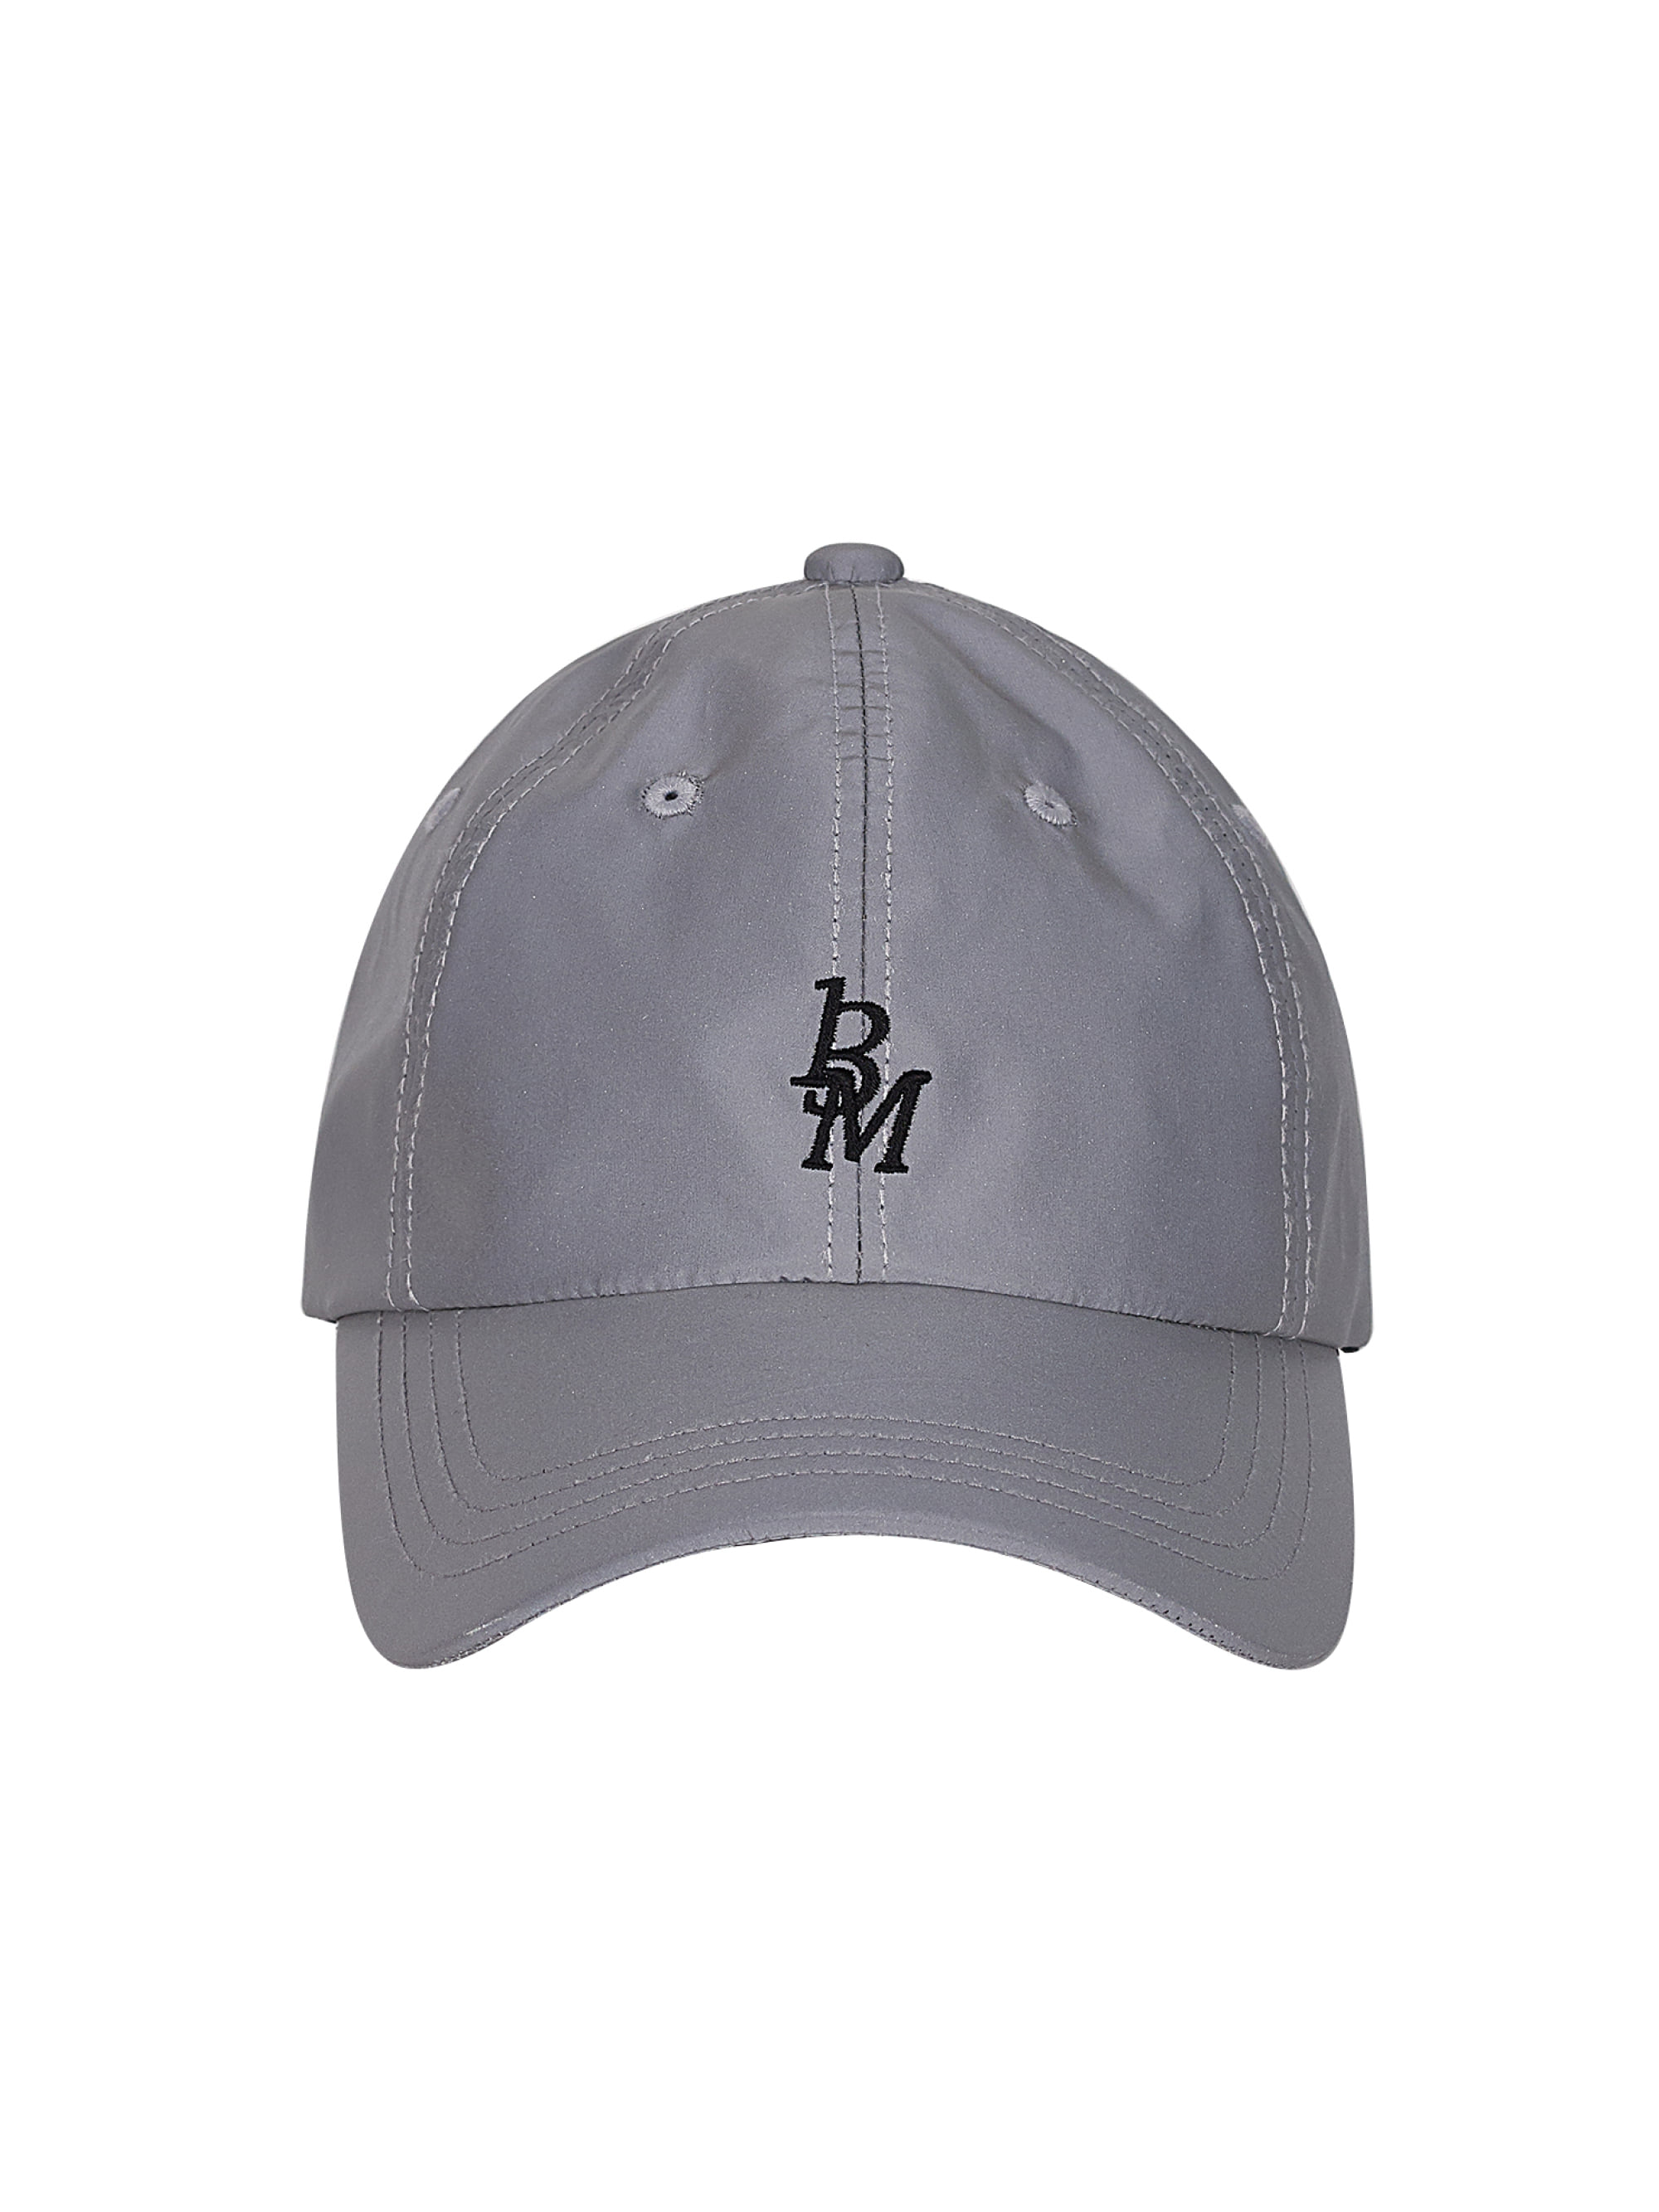 13M LOGO BALL CAP (GRAY)